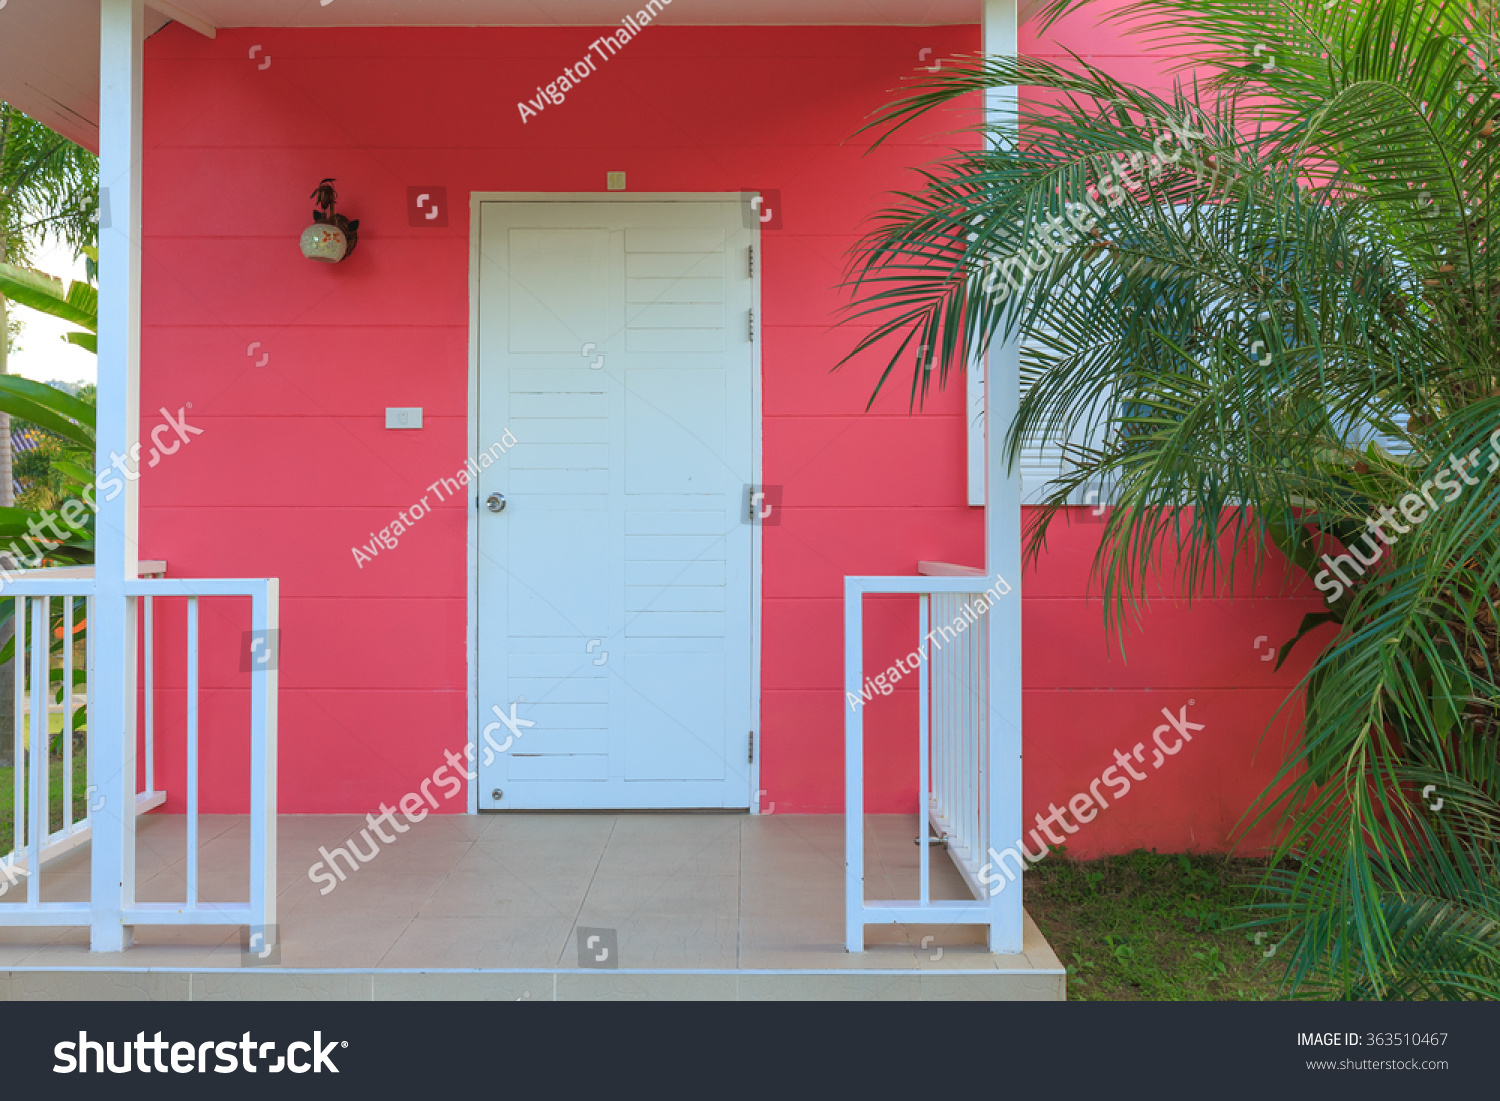 Exterior House Hotel Room Pink House Stock Photo (Edit Now ...